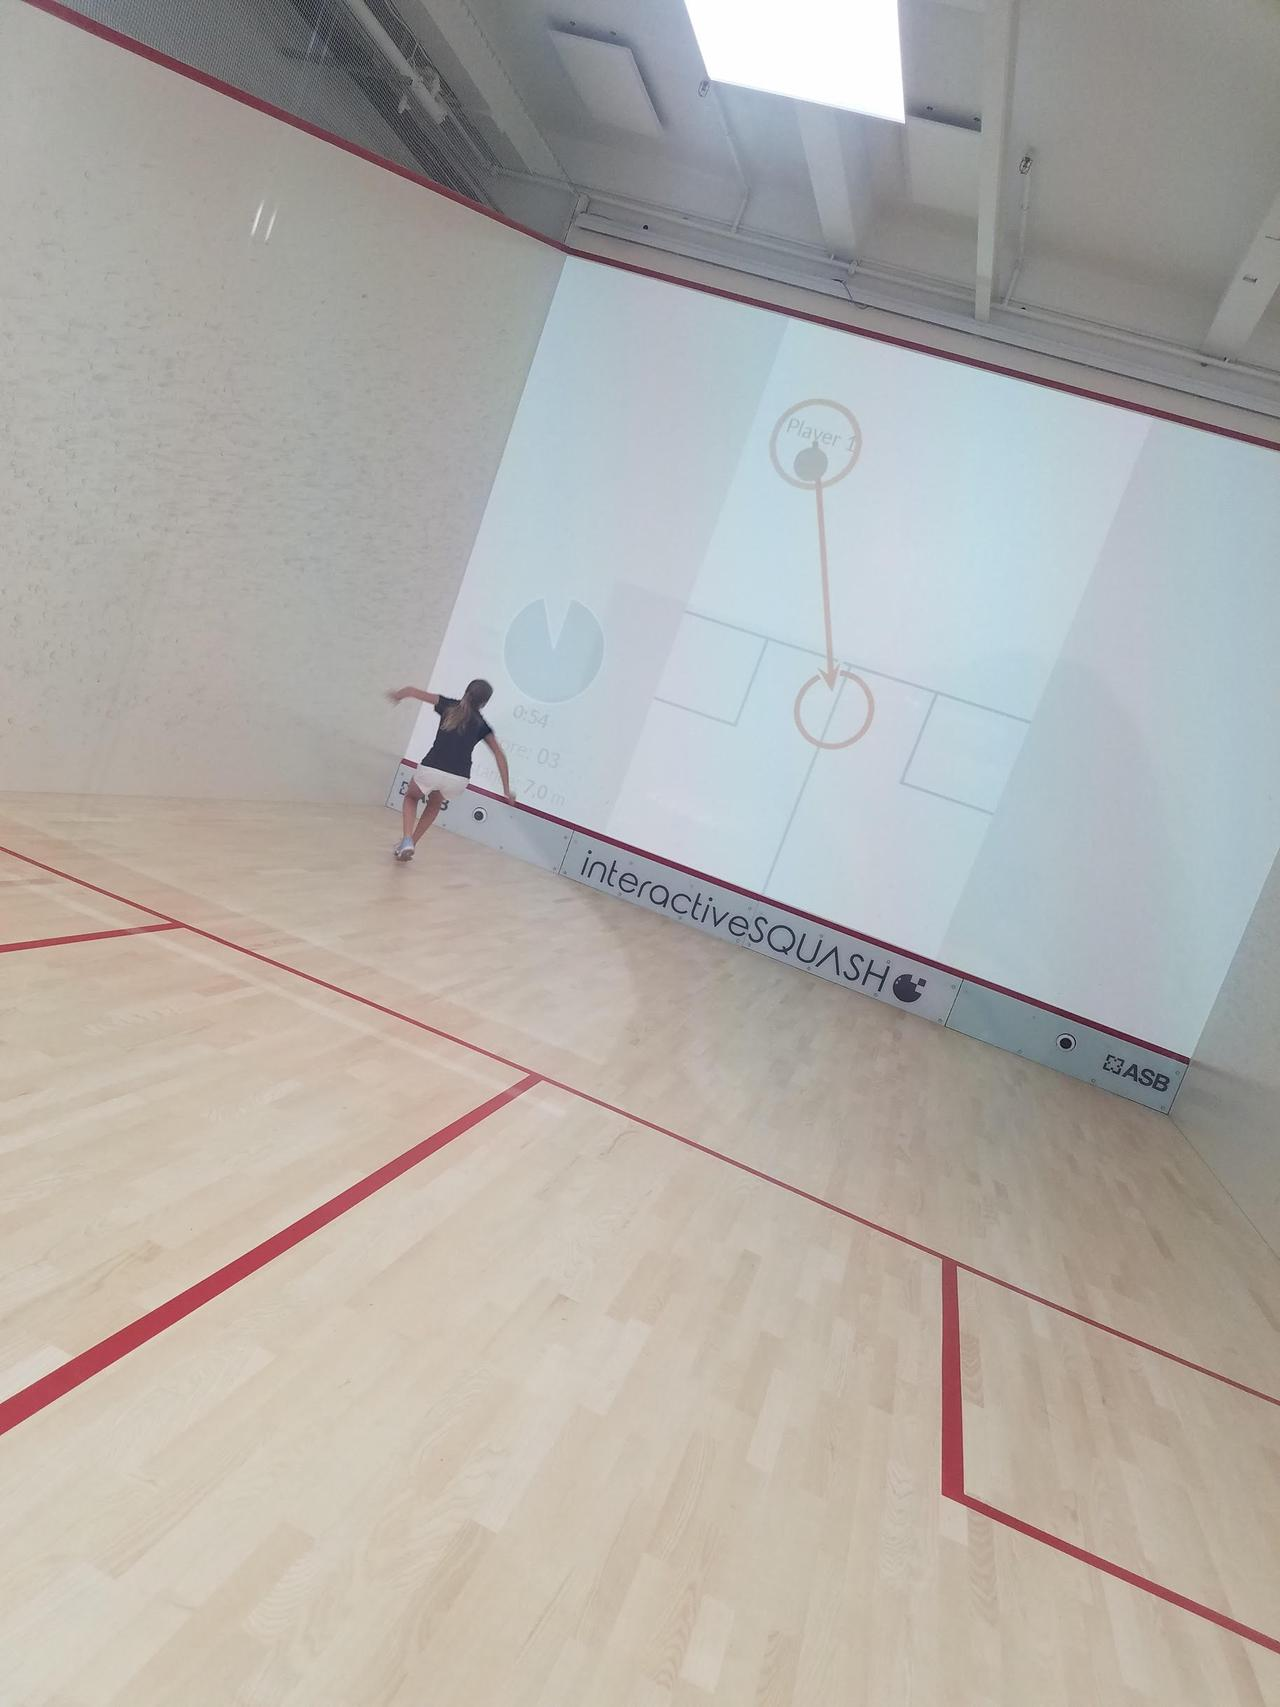 This is an image of physical conditioning for squash in Westport.